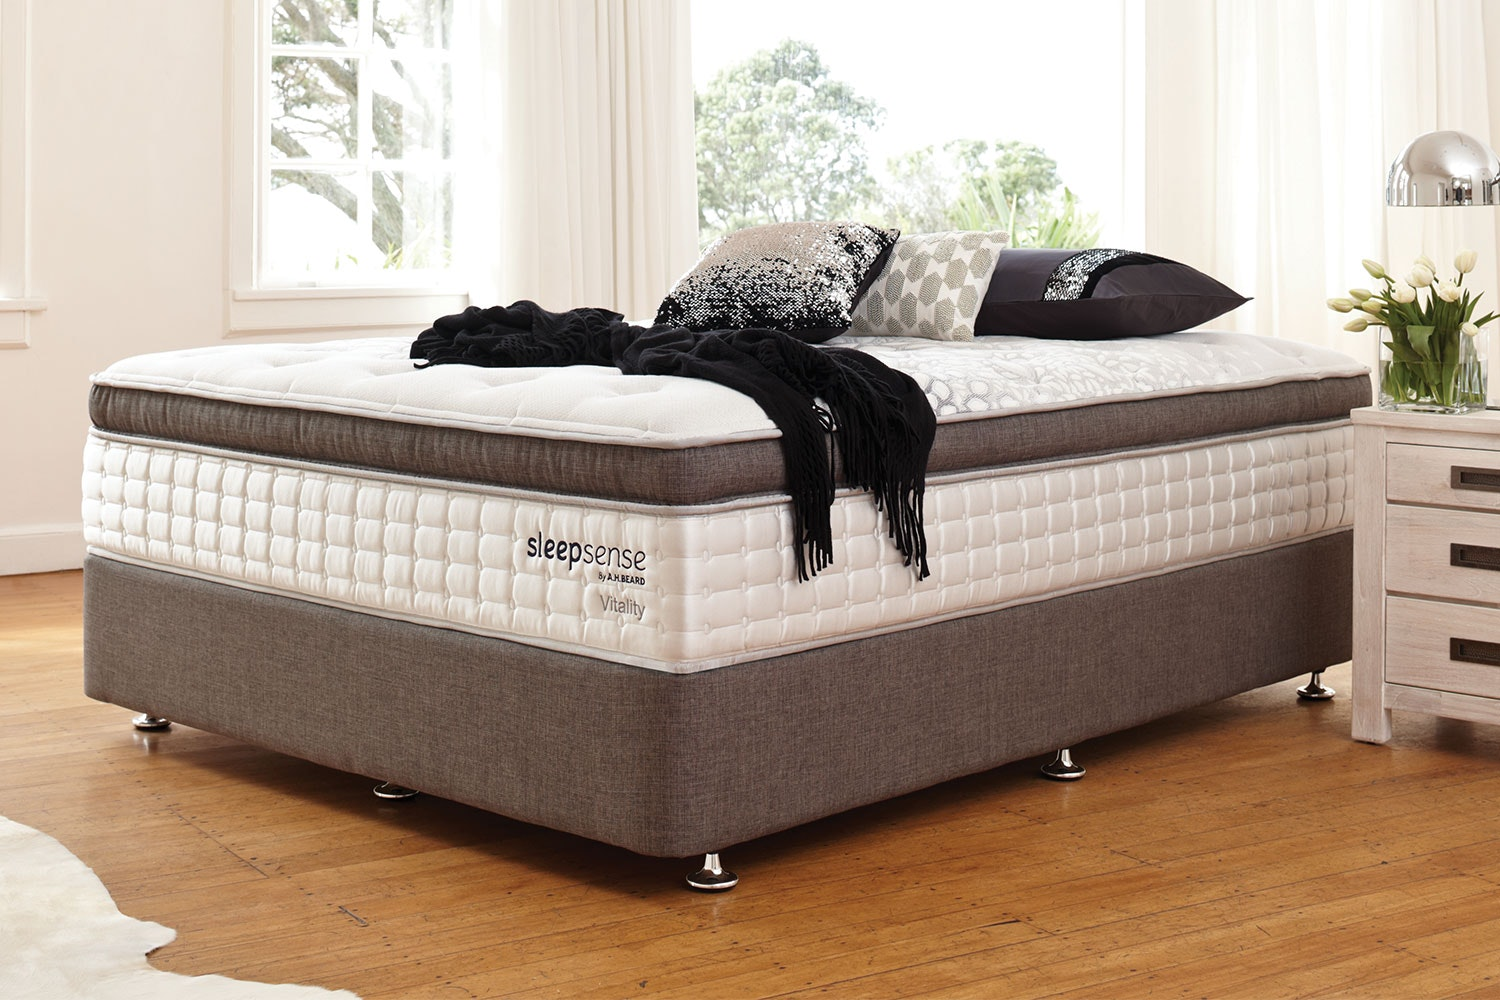 Vitality Queen Bed by Sleepsense